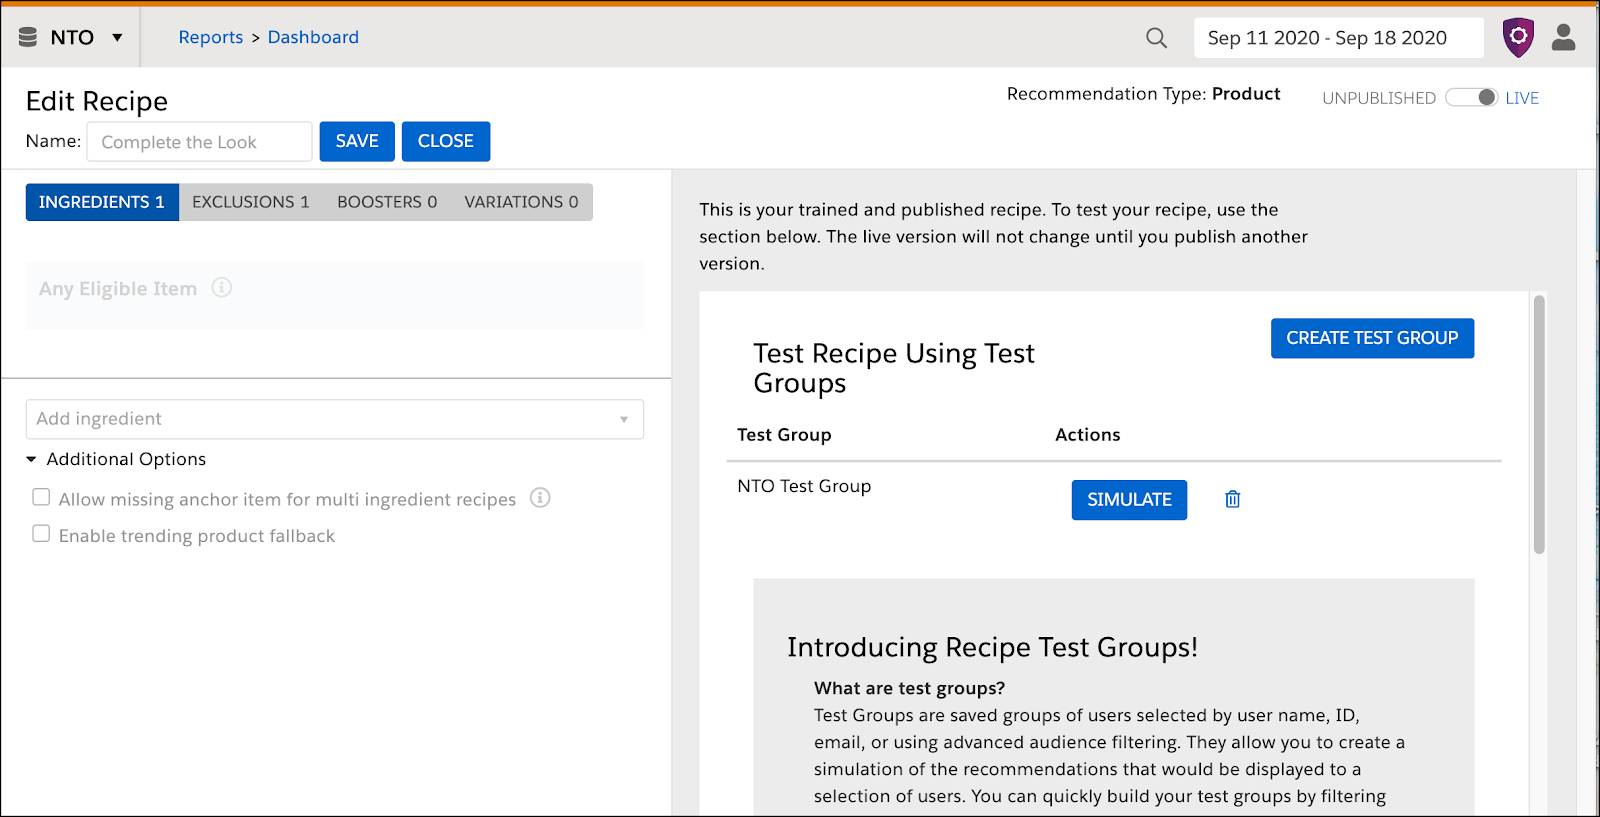 NTO Edit Recipe screenshot with options to create test groups.